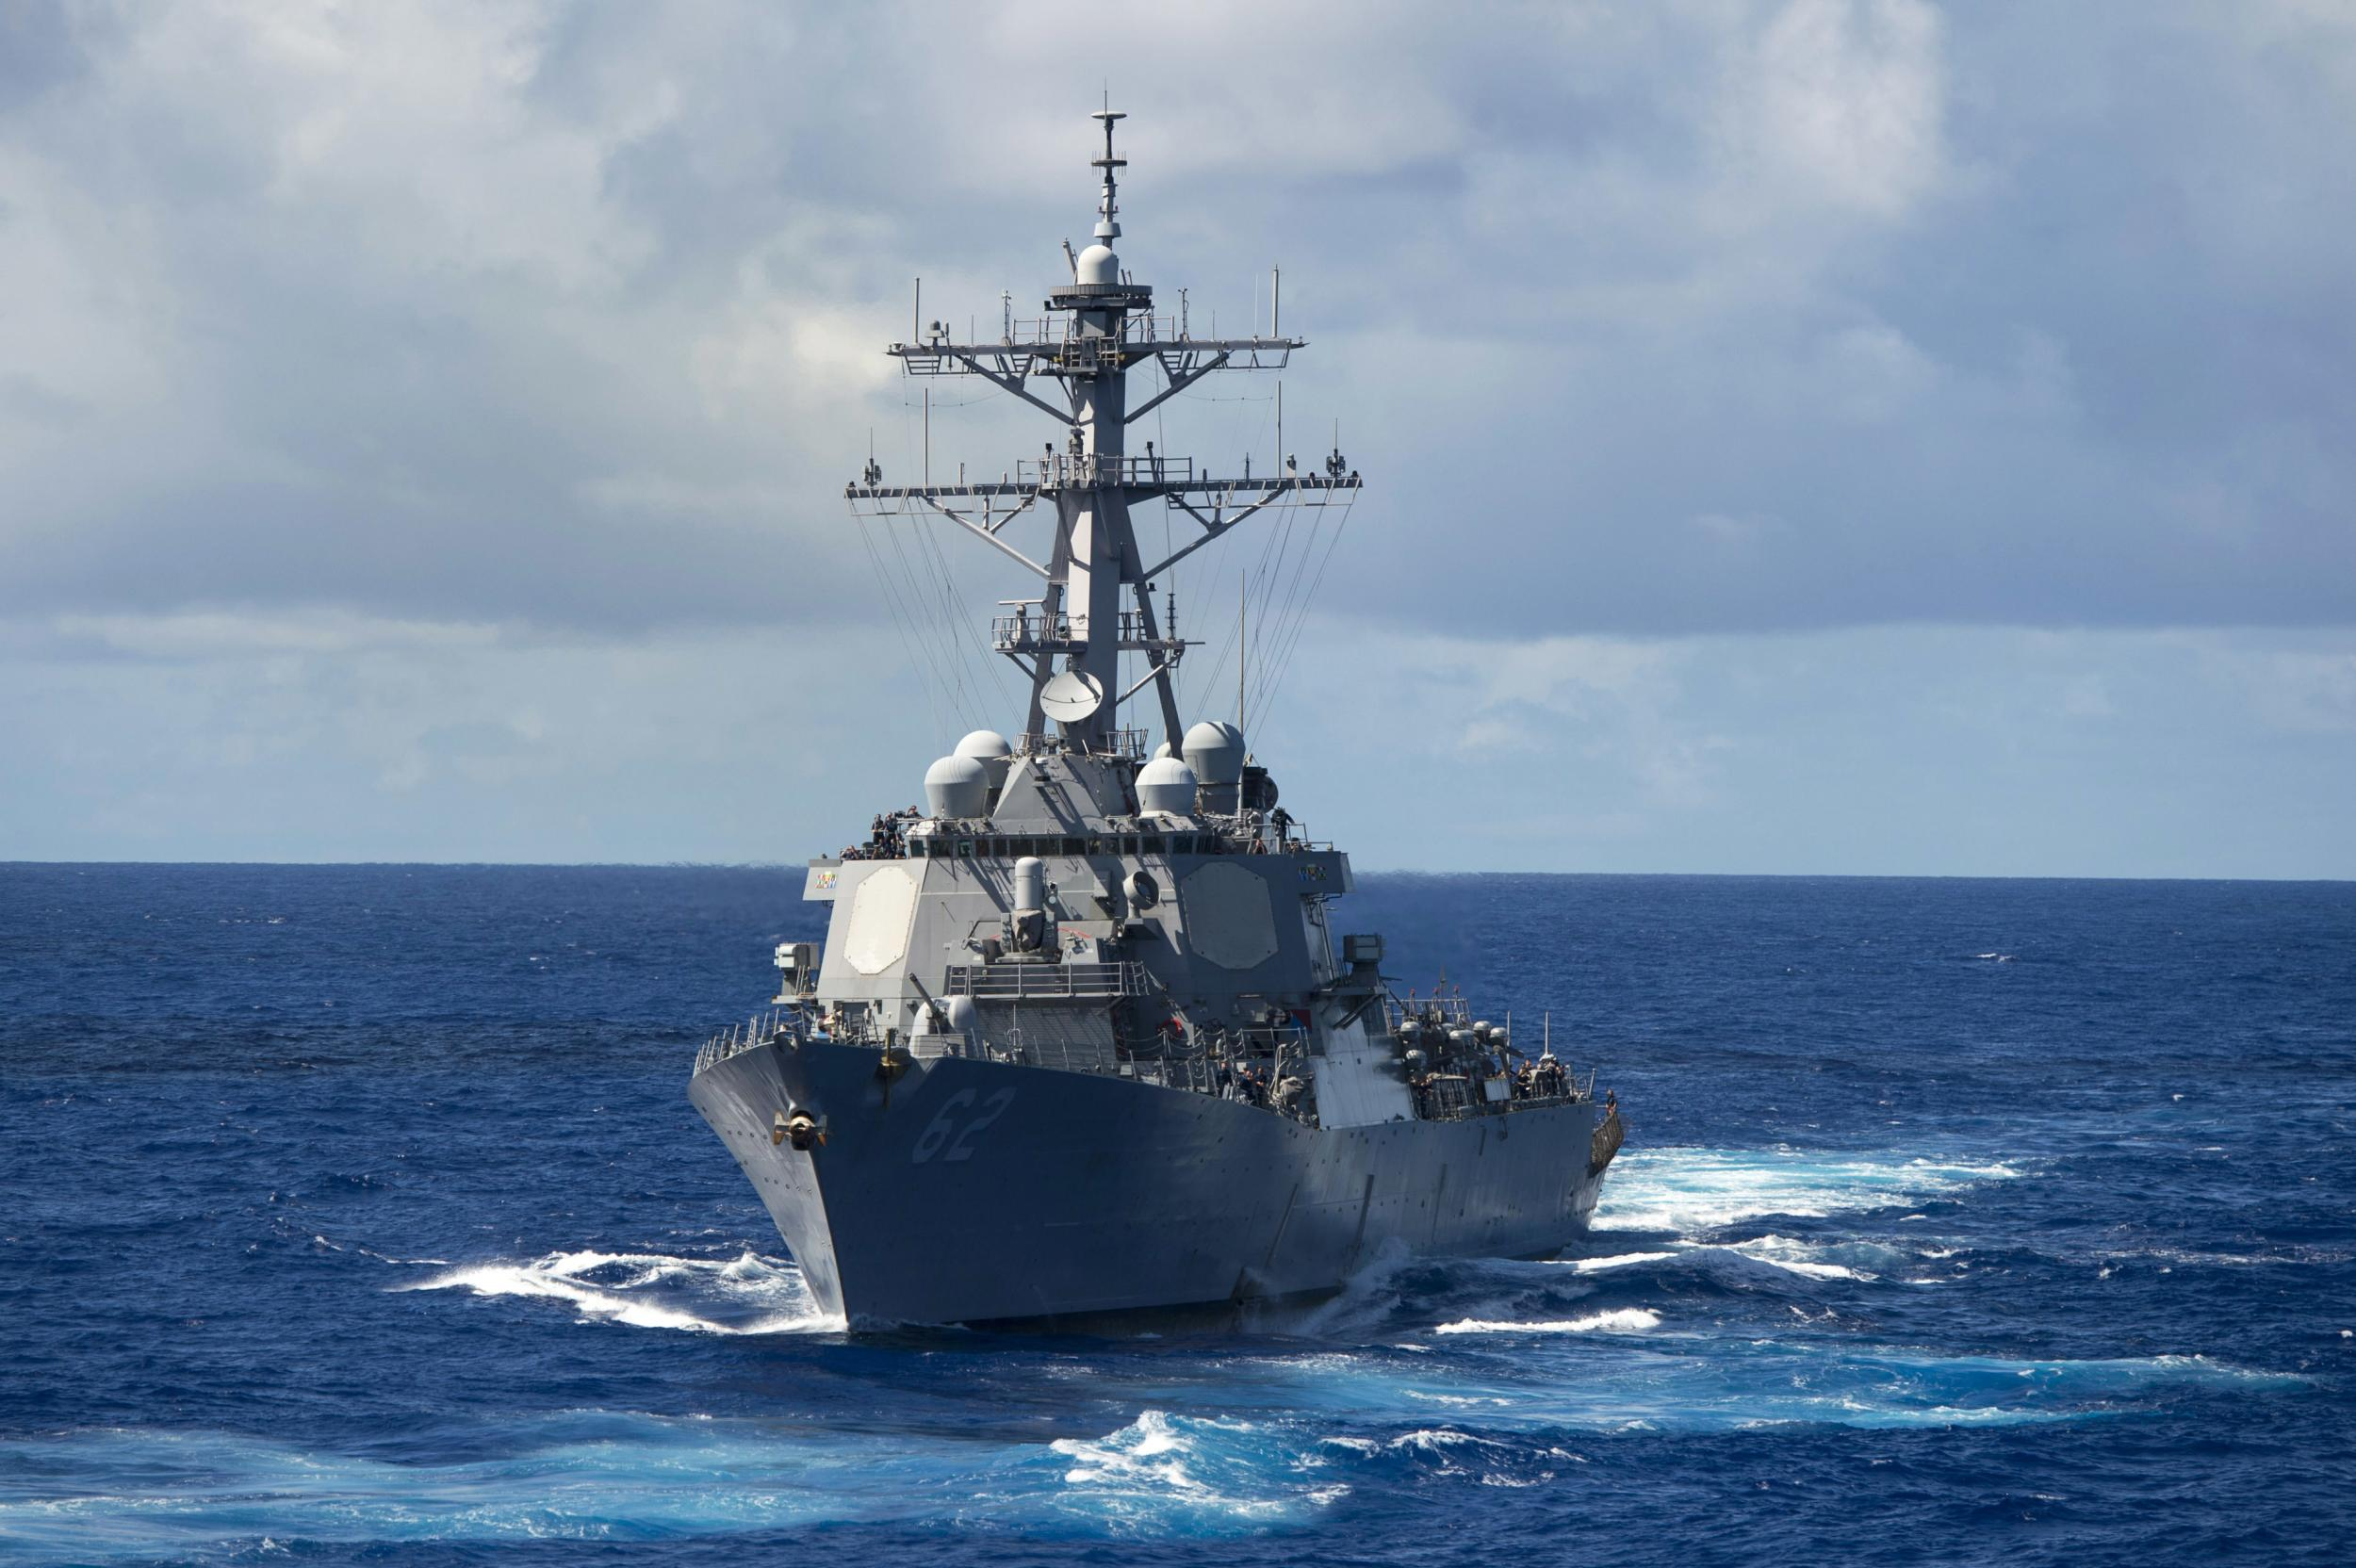 - uss fitzgerald us destroyer sinking - US warship starts to sink off coast of Japan after colliding with merchant ship